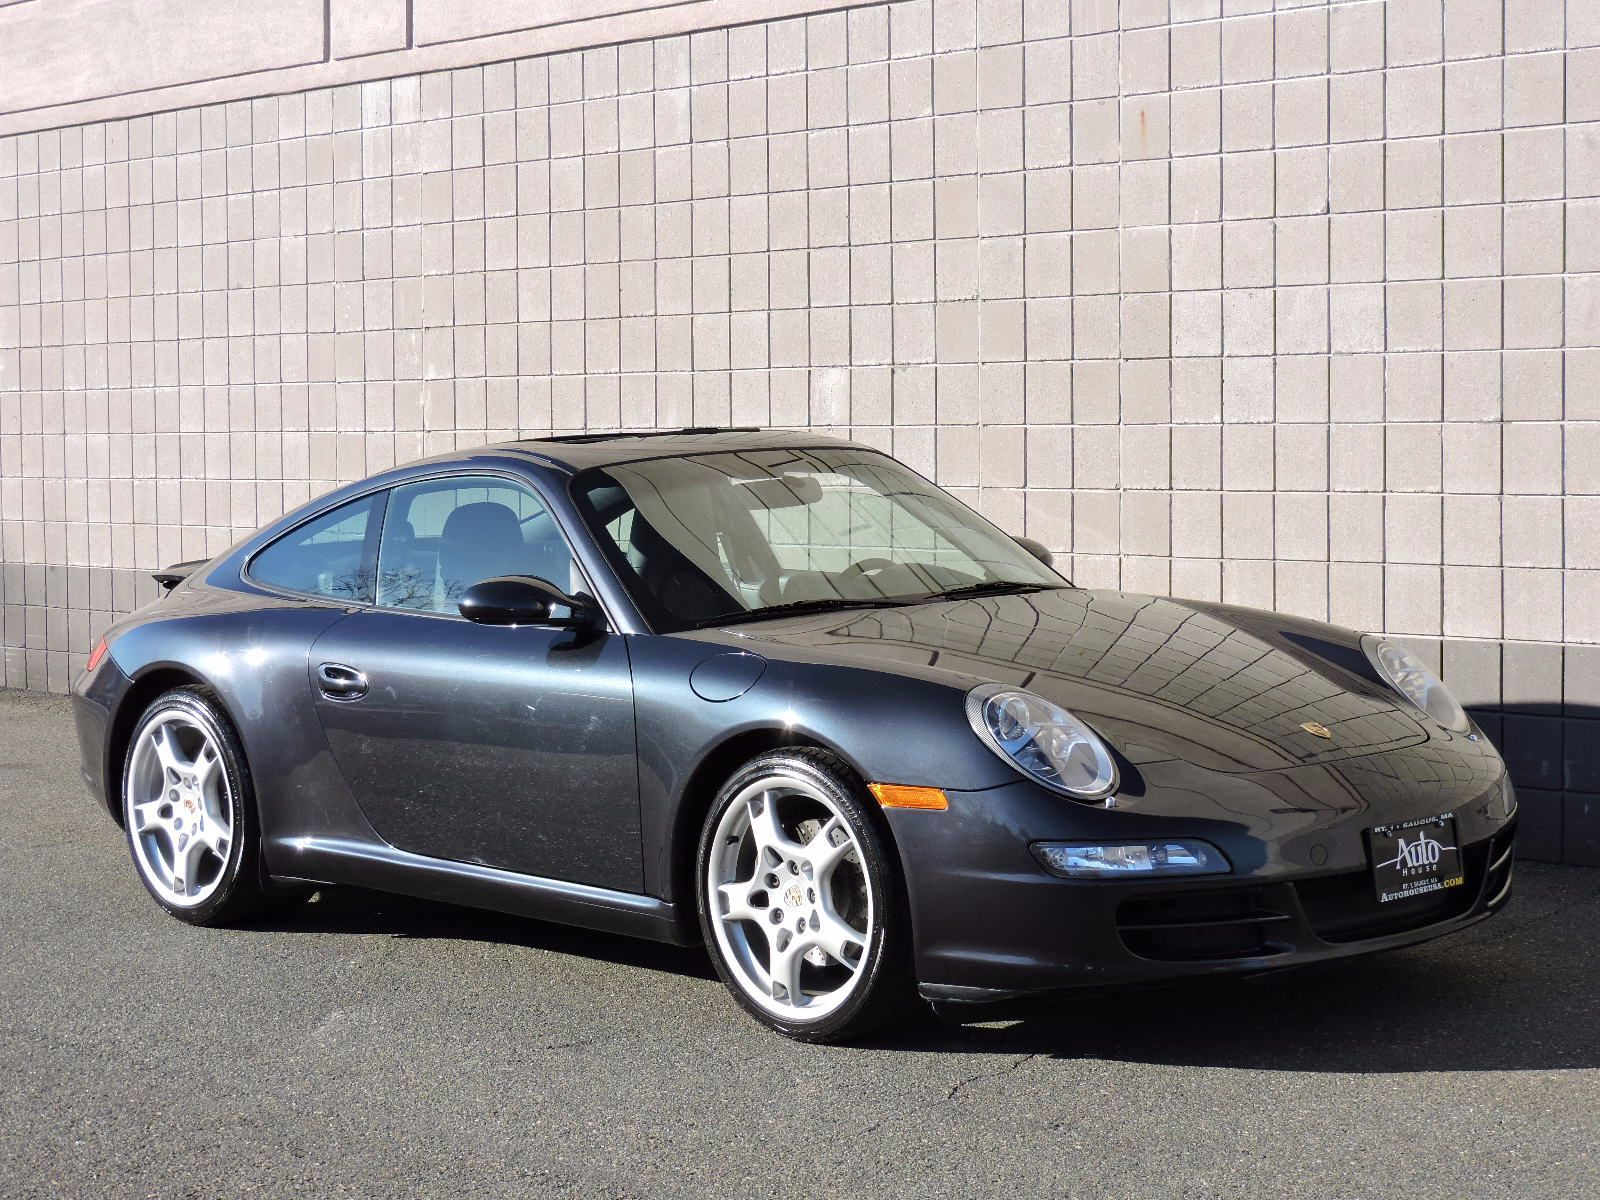 used 2005 porsche 911 carrera 997 at auto house usa saugus. Black Bedroom Furniture Sets. Home Design Ideas